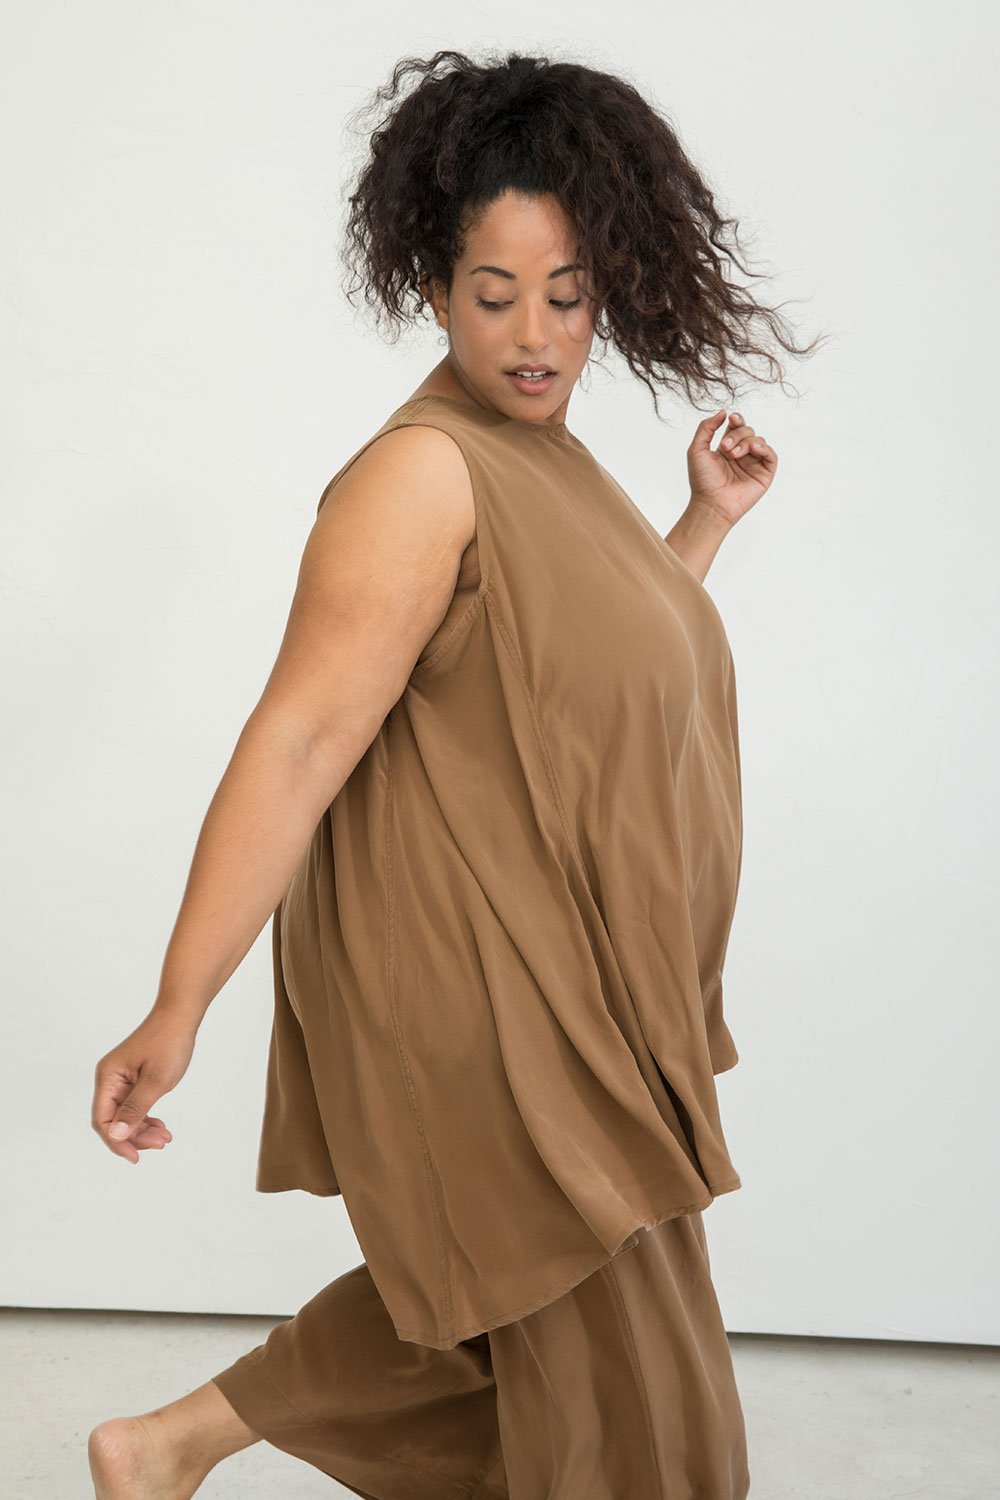 ELIZABETH SUZANN (ECO) - Beautiful elegant and casual clothes made out of silk and linen. $$$, US, Sizes: XS - 4XL, Worldwide delivery.